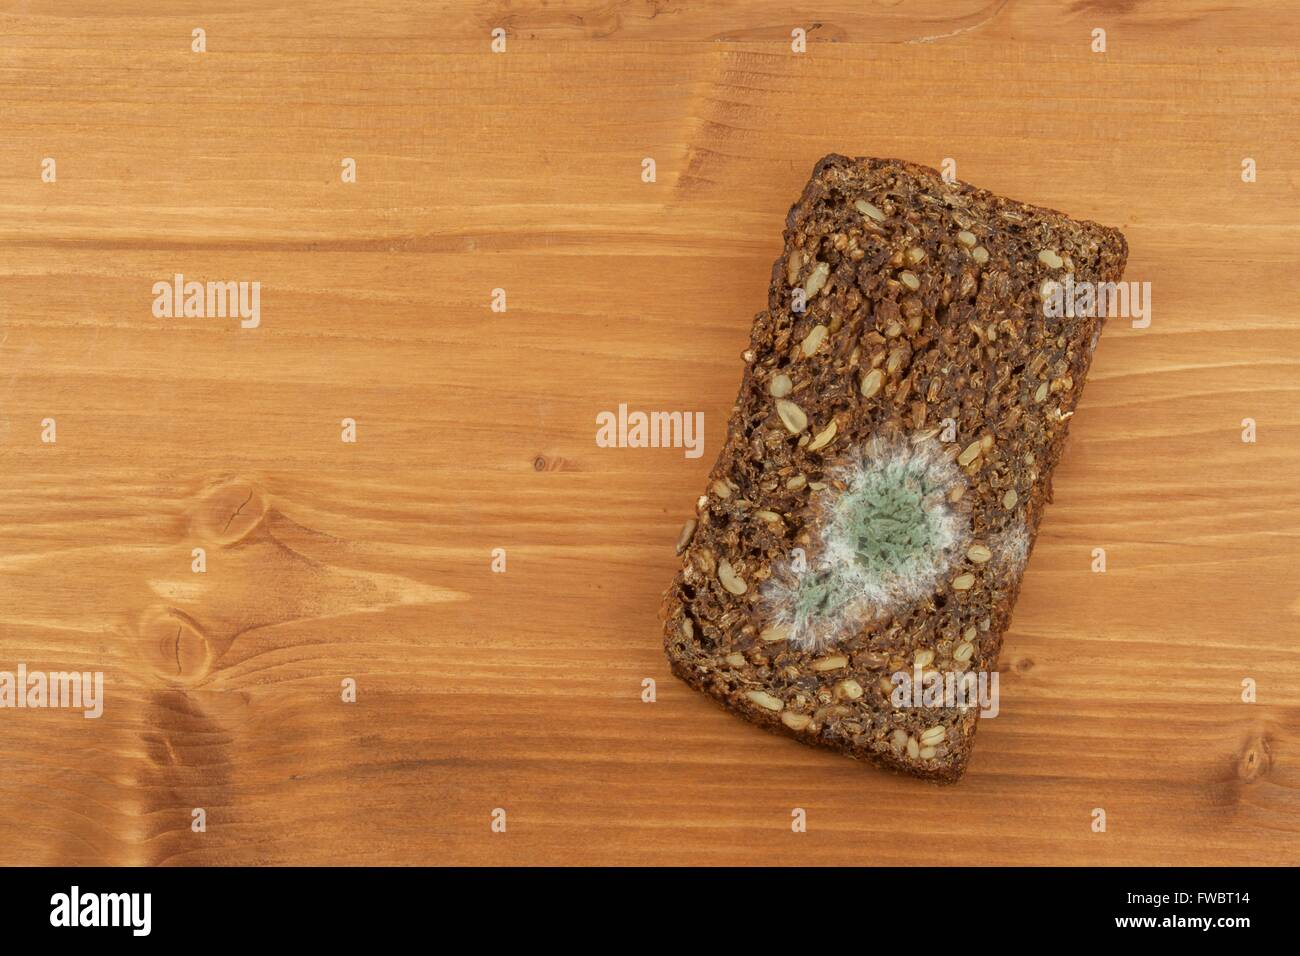 Moldy bread in wooden table. Unhealthy food. Spoiled food. - Stock Image